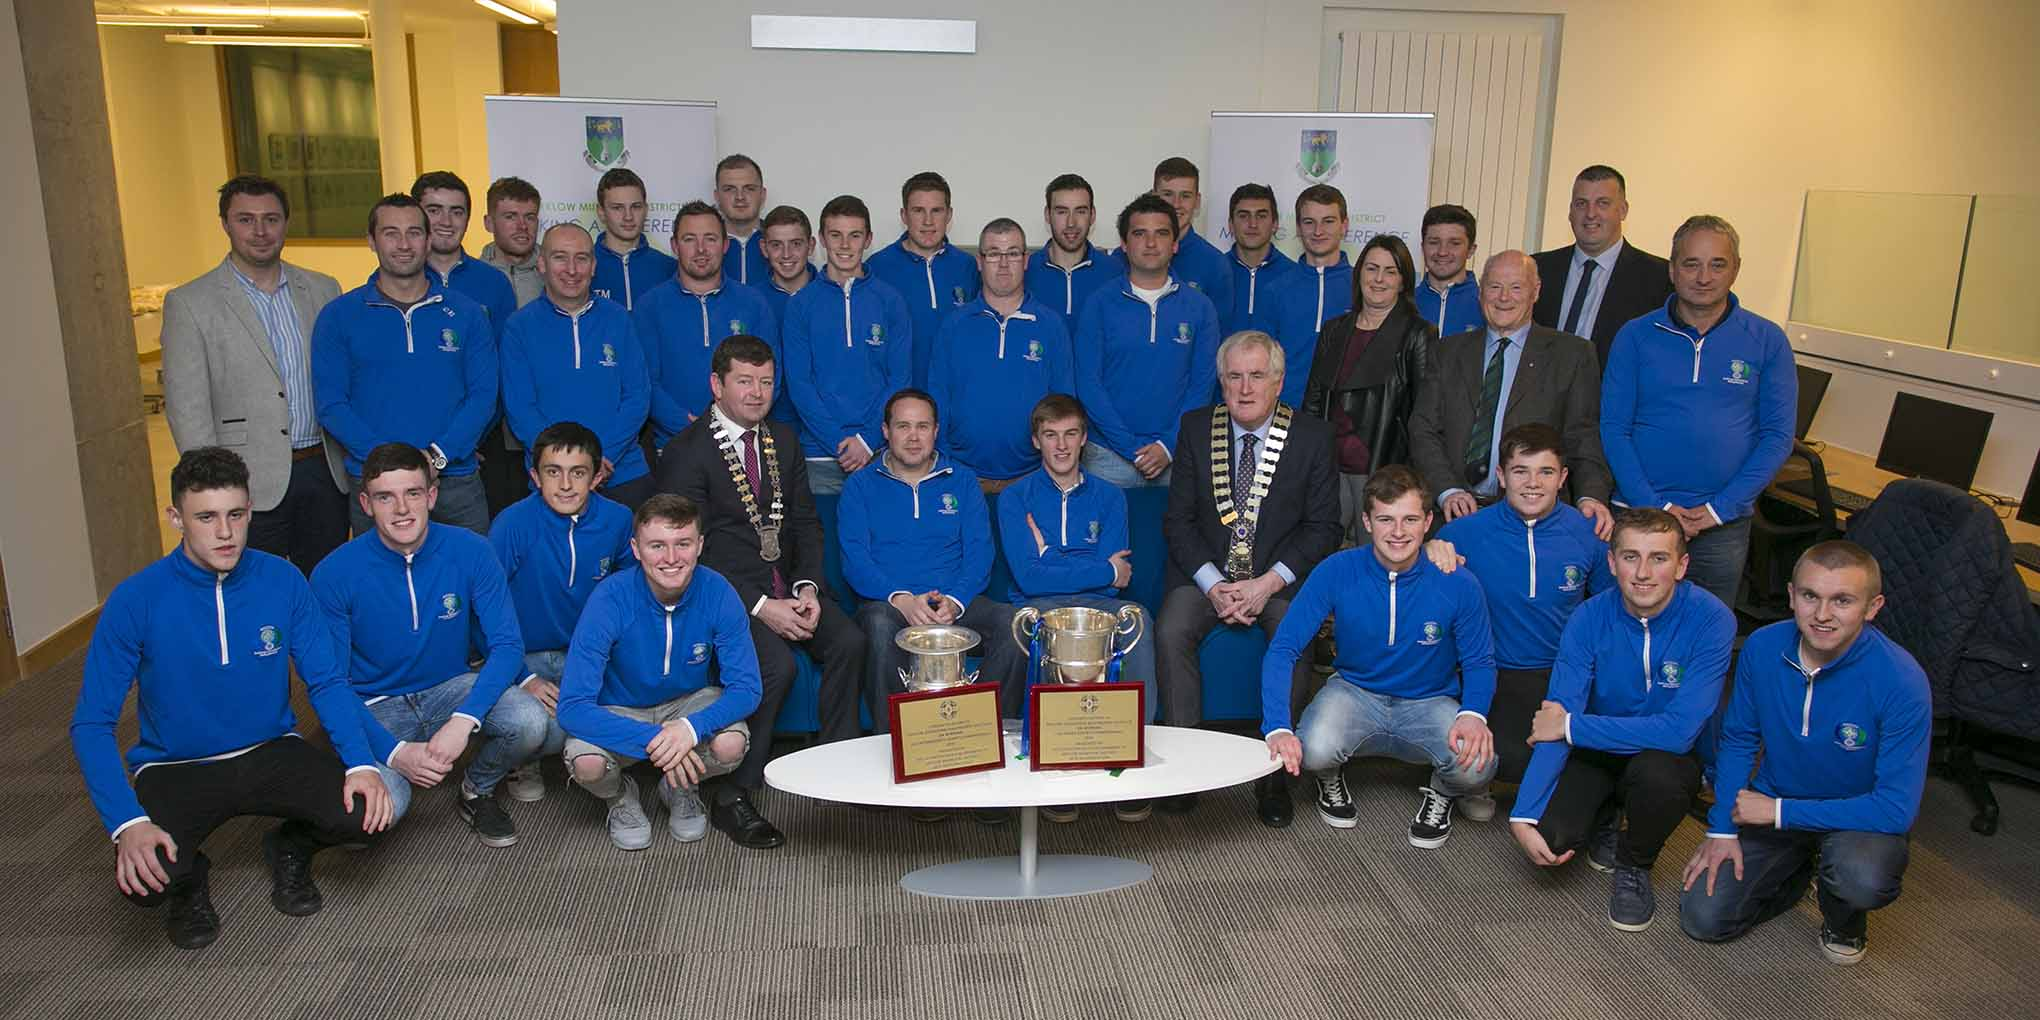 Pictured at the Arklow Municipal District Civic Reception for the Arklow Geraldines Ballymoney GAA club were the Cathaoirleach of Wicklow County Council, Cllr Pat Fitzgerald, and the Cathaoirleach of Arklow Municipal District, Cllr Pat Kennedy, along with players and club officials.